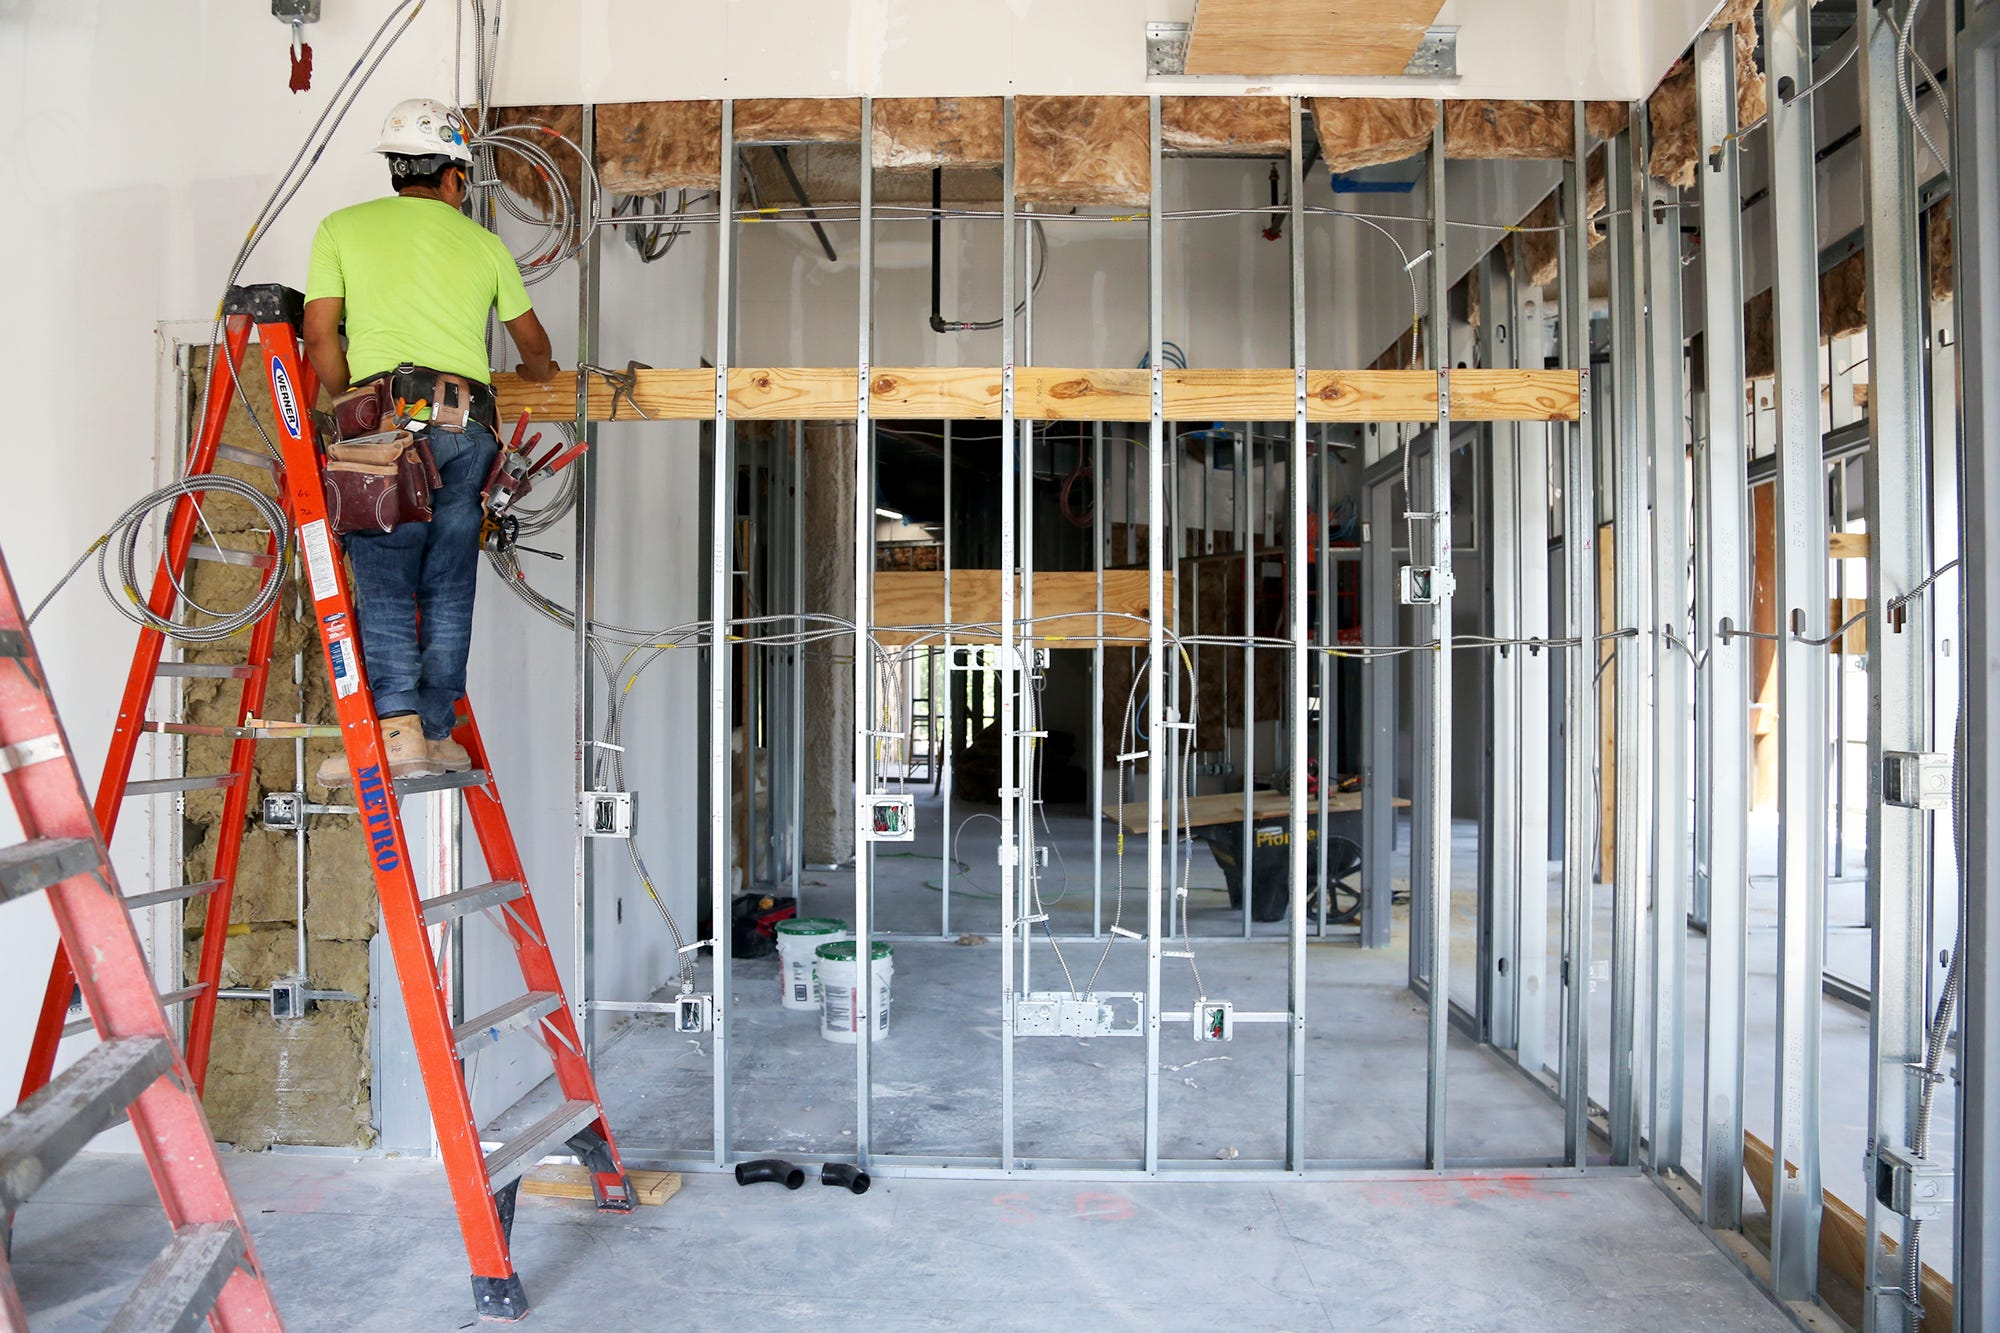 Construction workers make progress on the inside of the building at 111 Maplewood Ave. in Portsmouth.